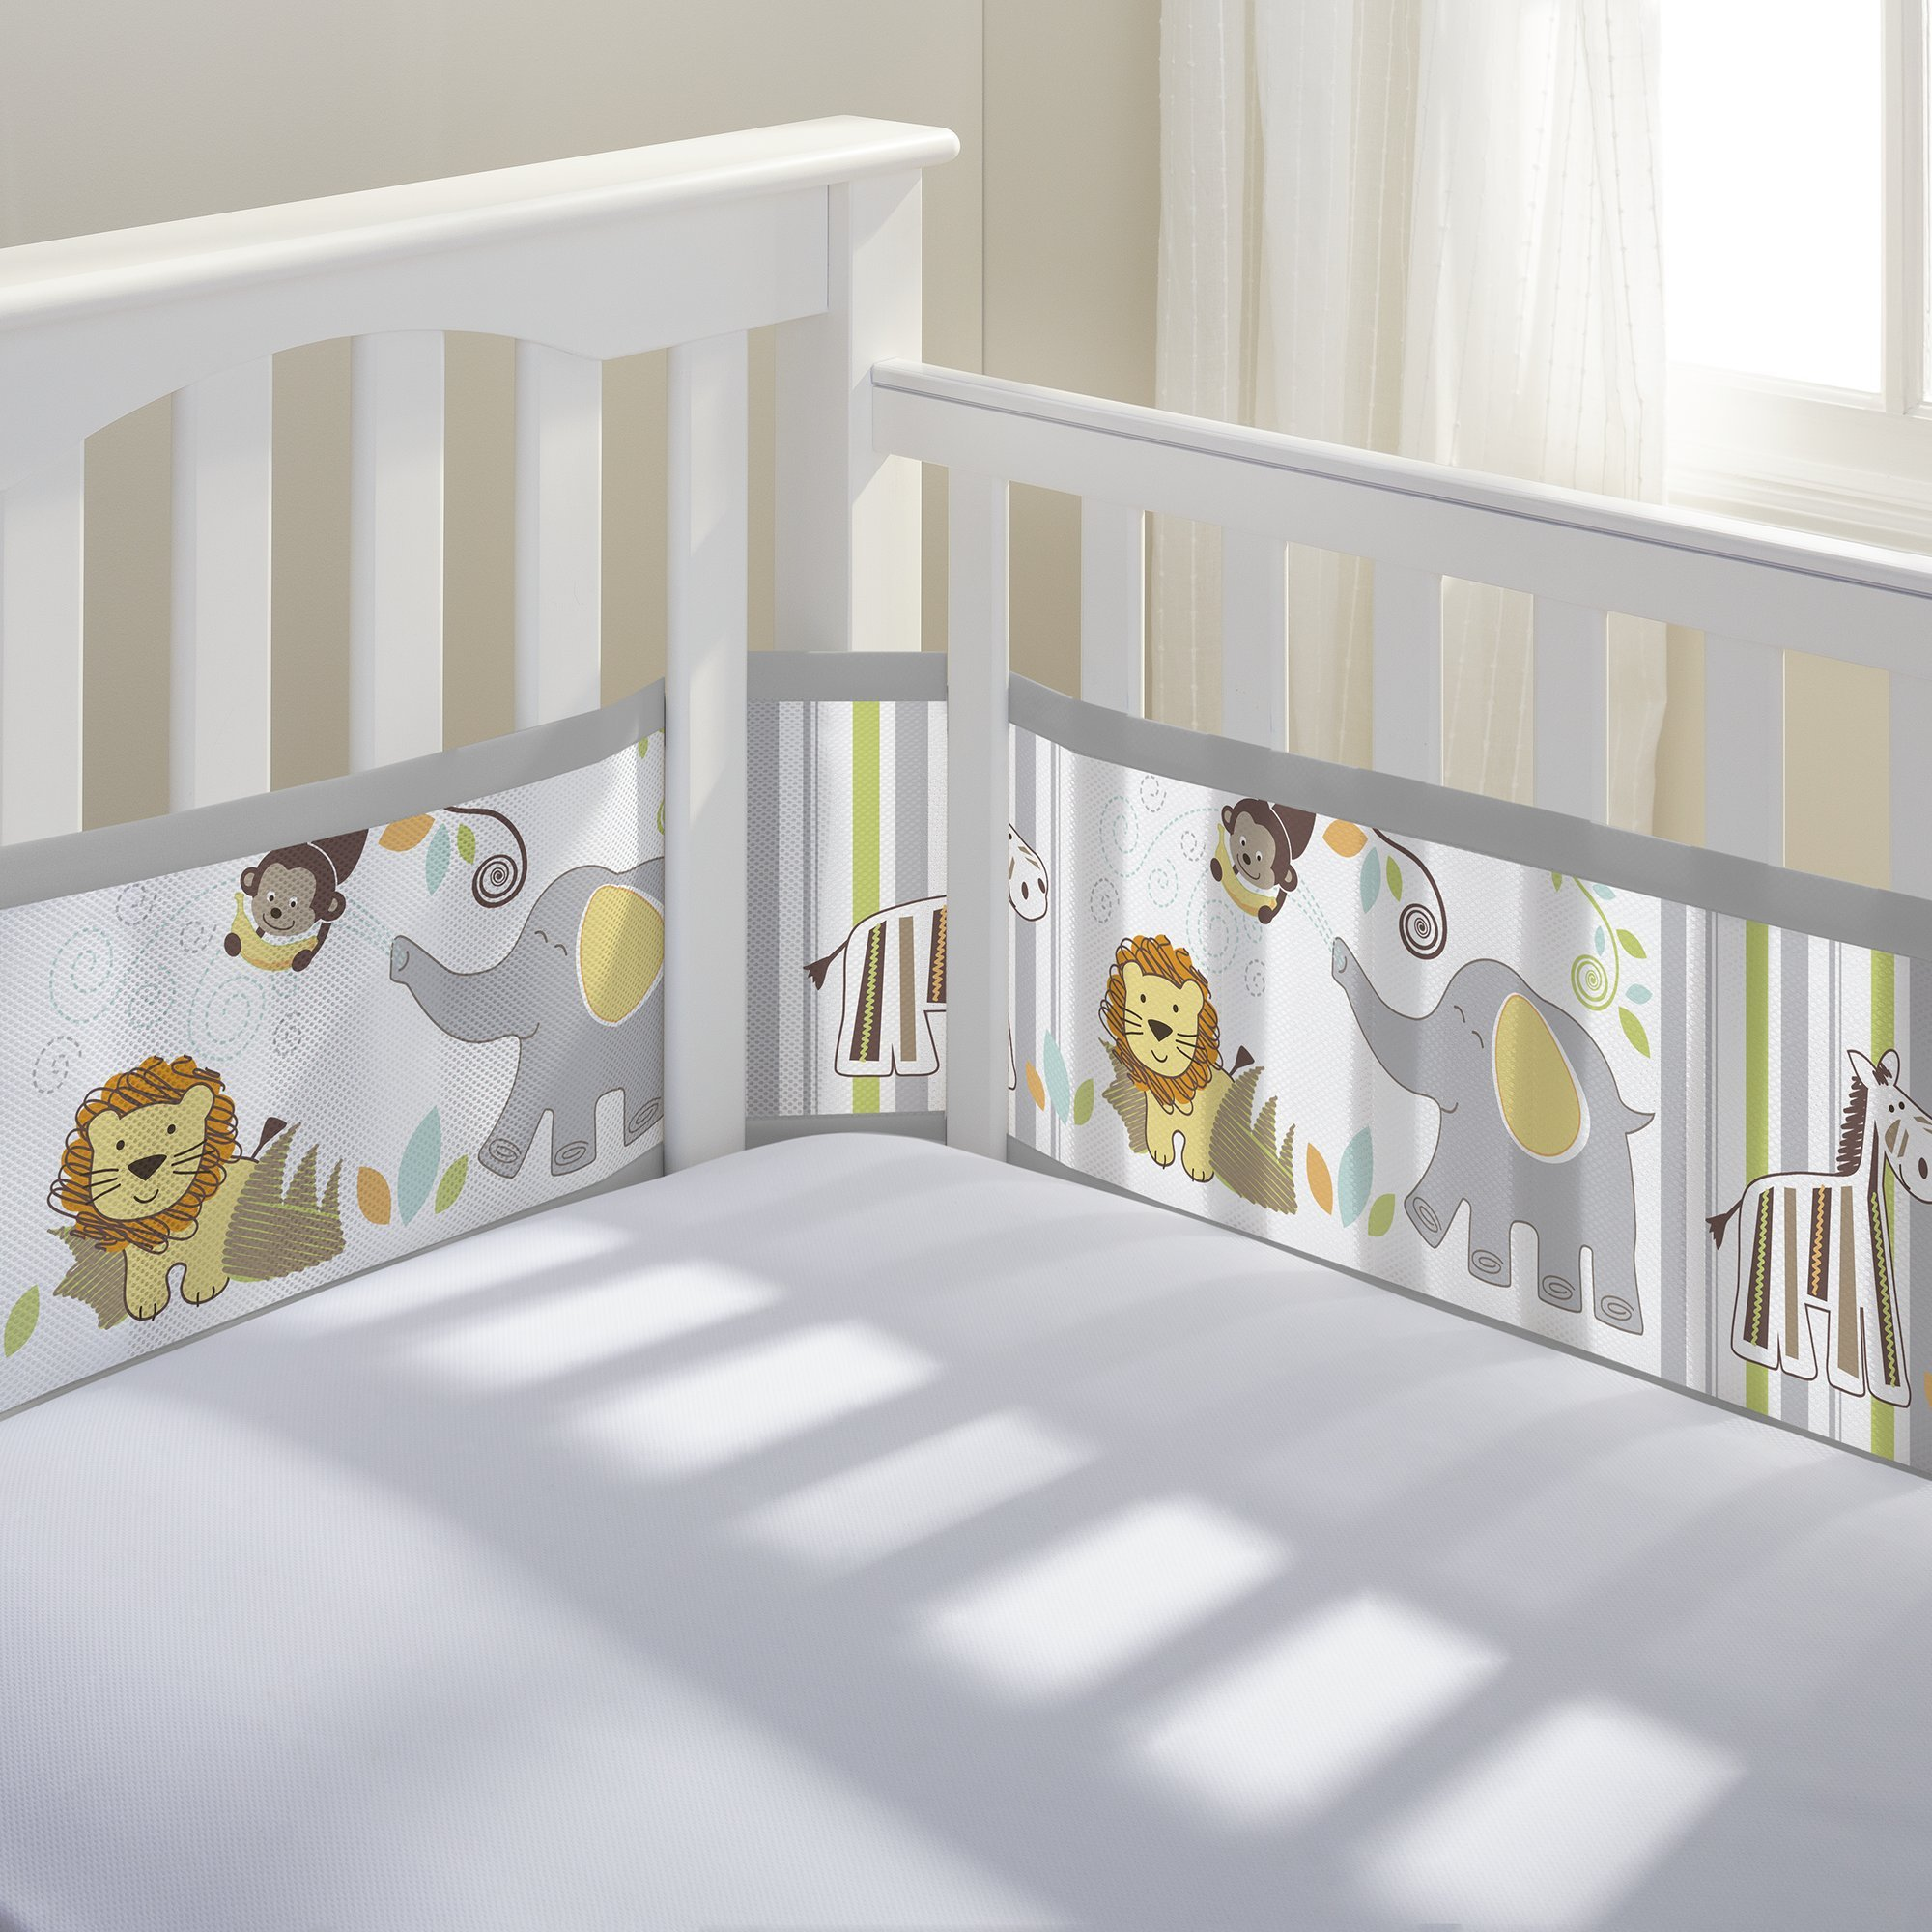 Breathable Baby Breathable Mesh Crib Liner | Doctor Endorsed | Prevents Babies from Getting Stuck in Crib Slats | Fits 4 Sided Slatted & Solid Back Cribs | Safari Fun Too by BreathableBaby (Image #1)